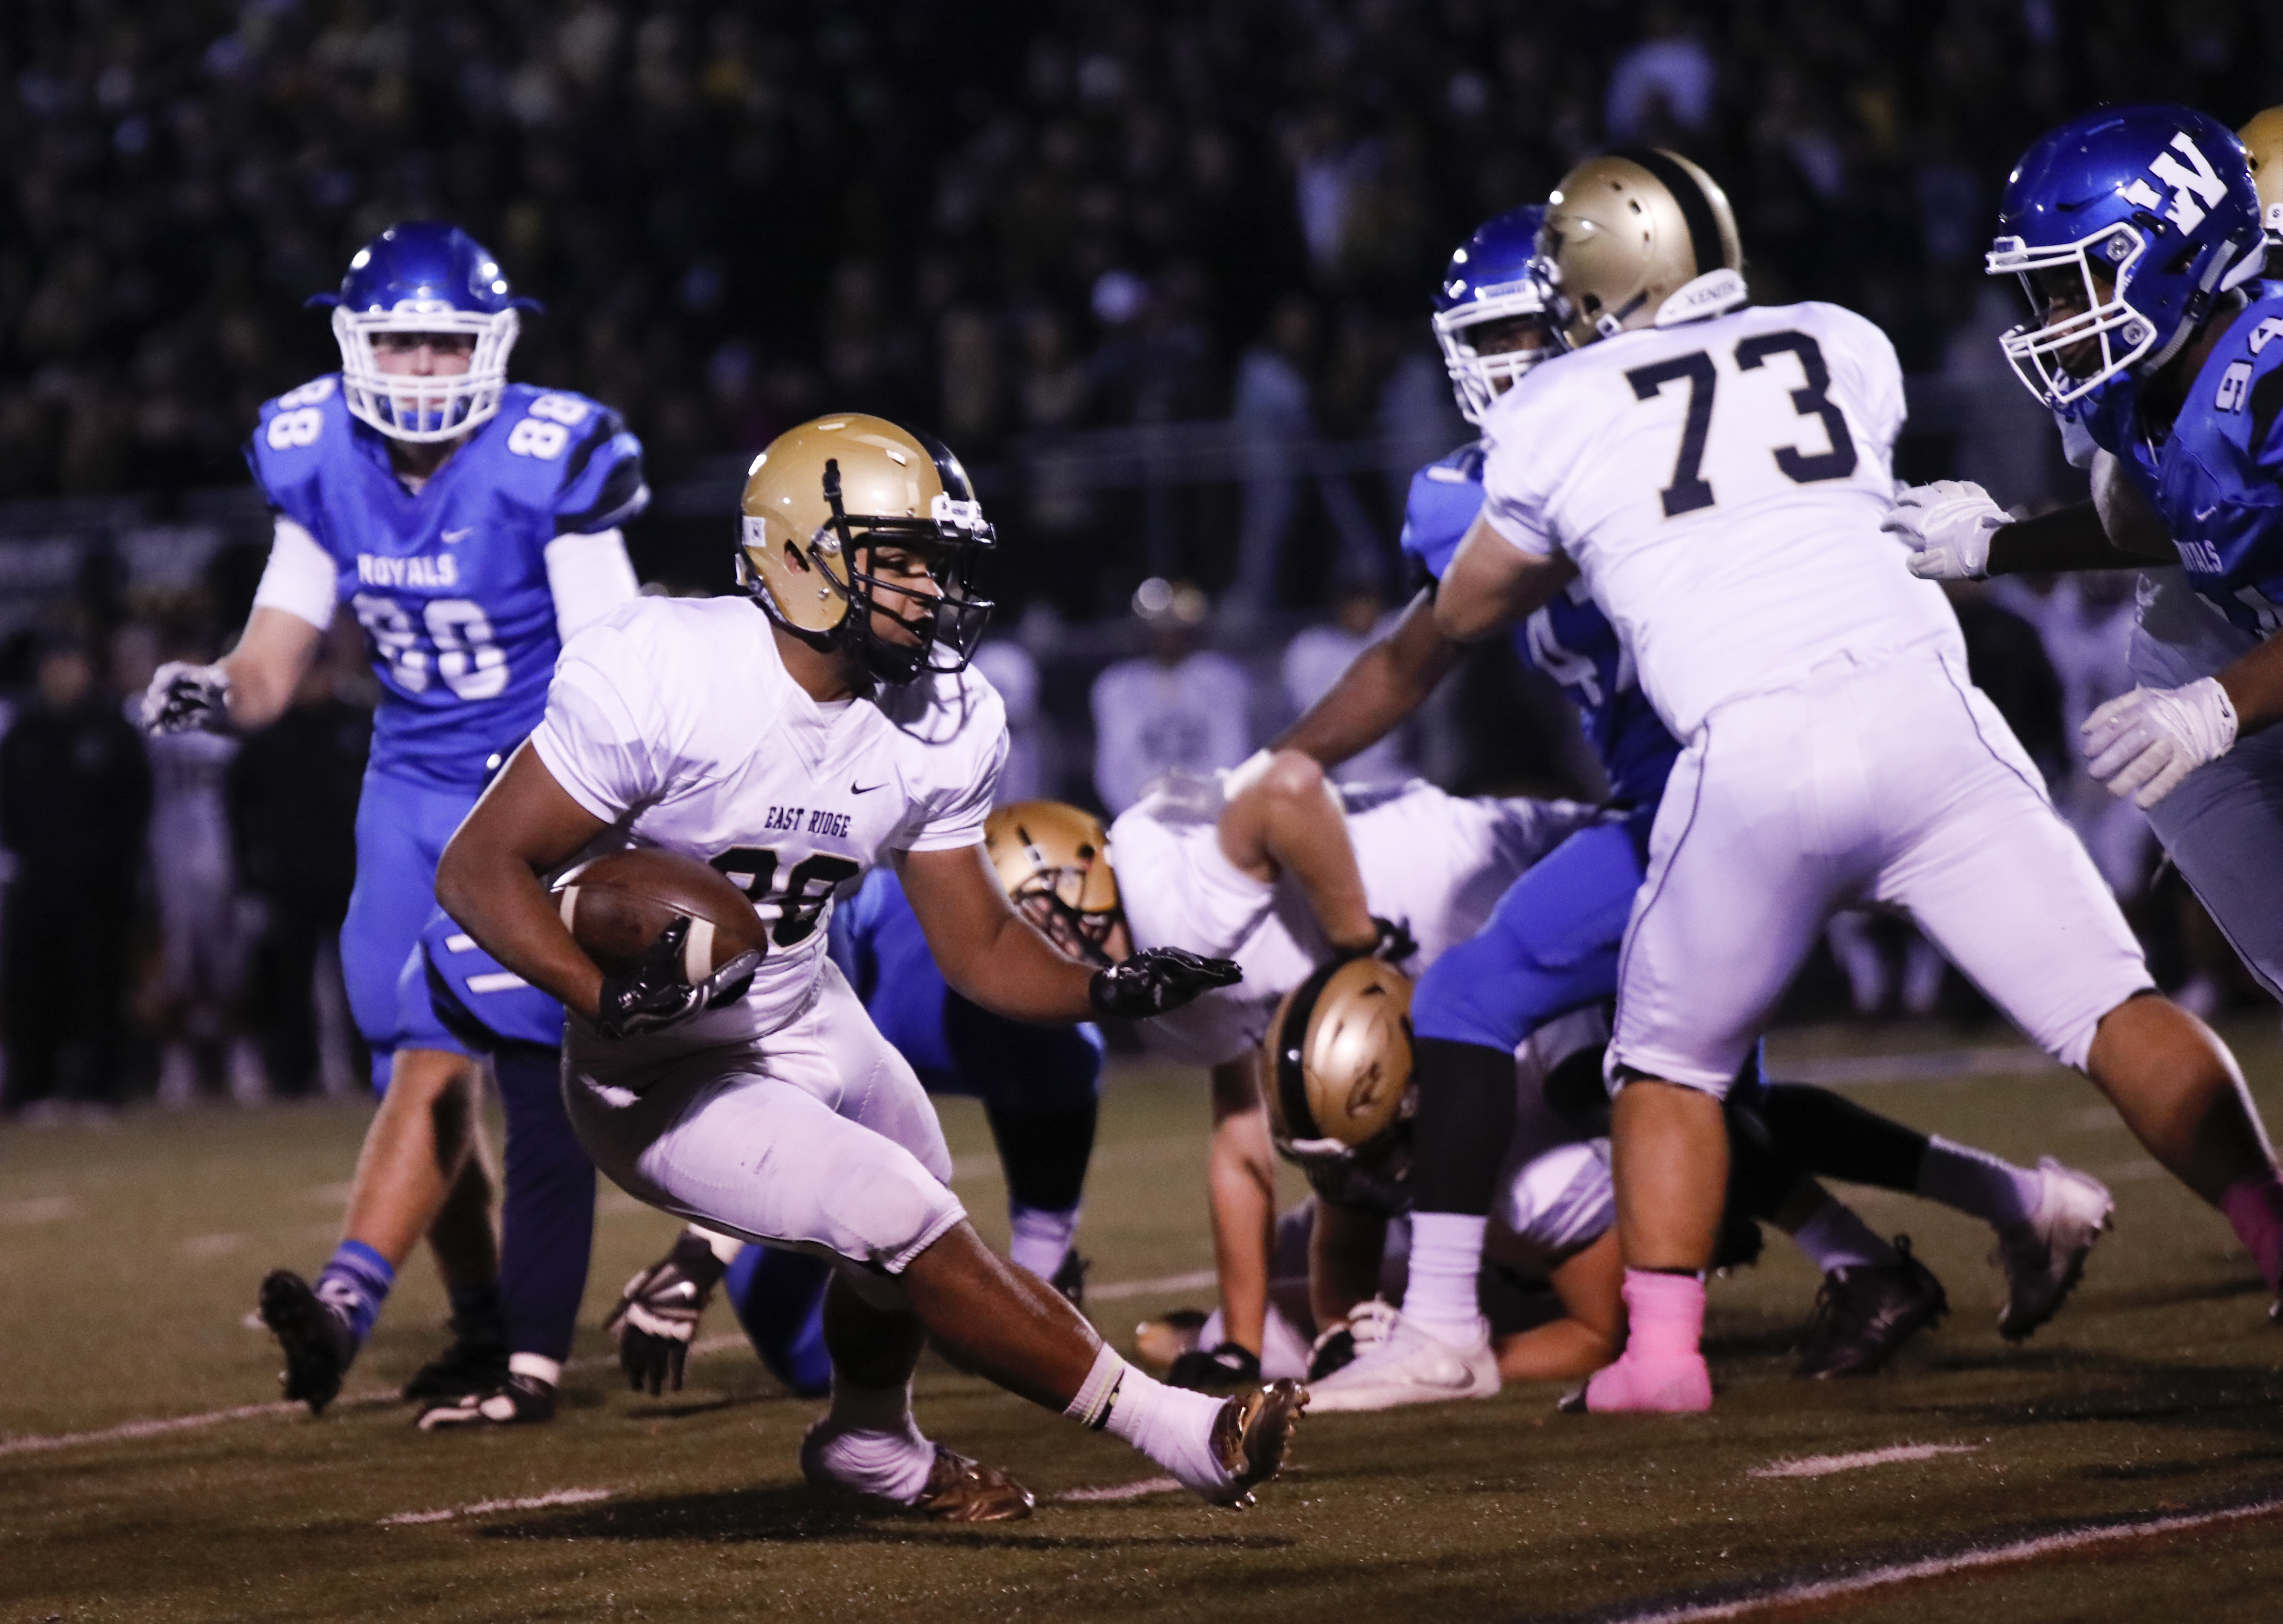 Dominik London (28) of East Ridge runs the ball up the field. East Ridge lost to its rival Woodbury 47-25 in a game at Woodbury. Photo by Chris Juhn